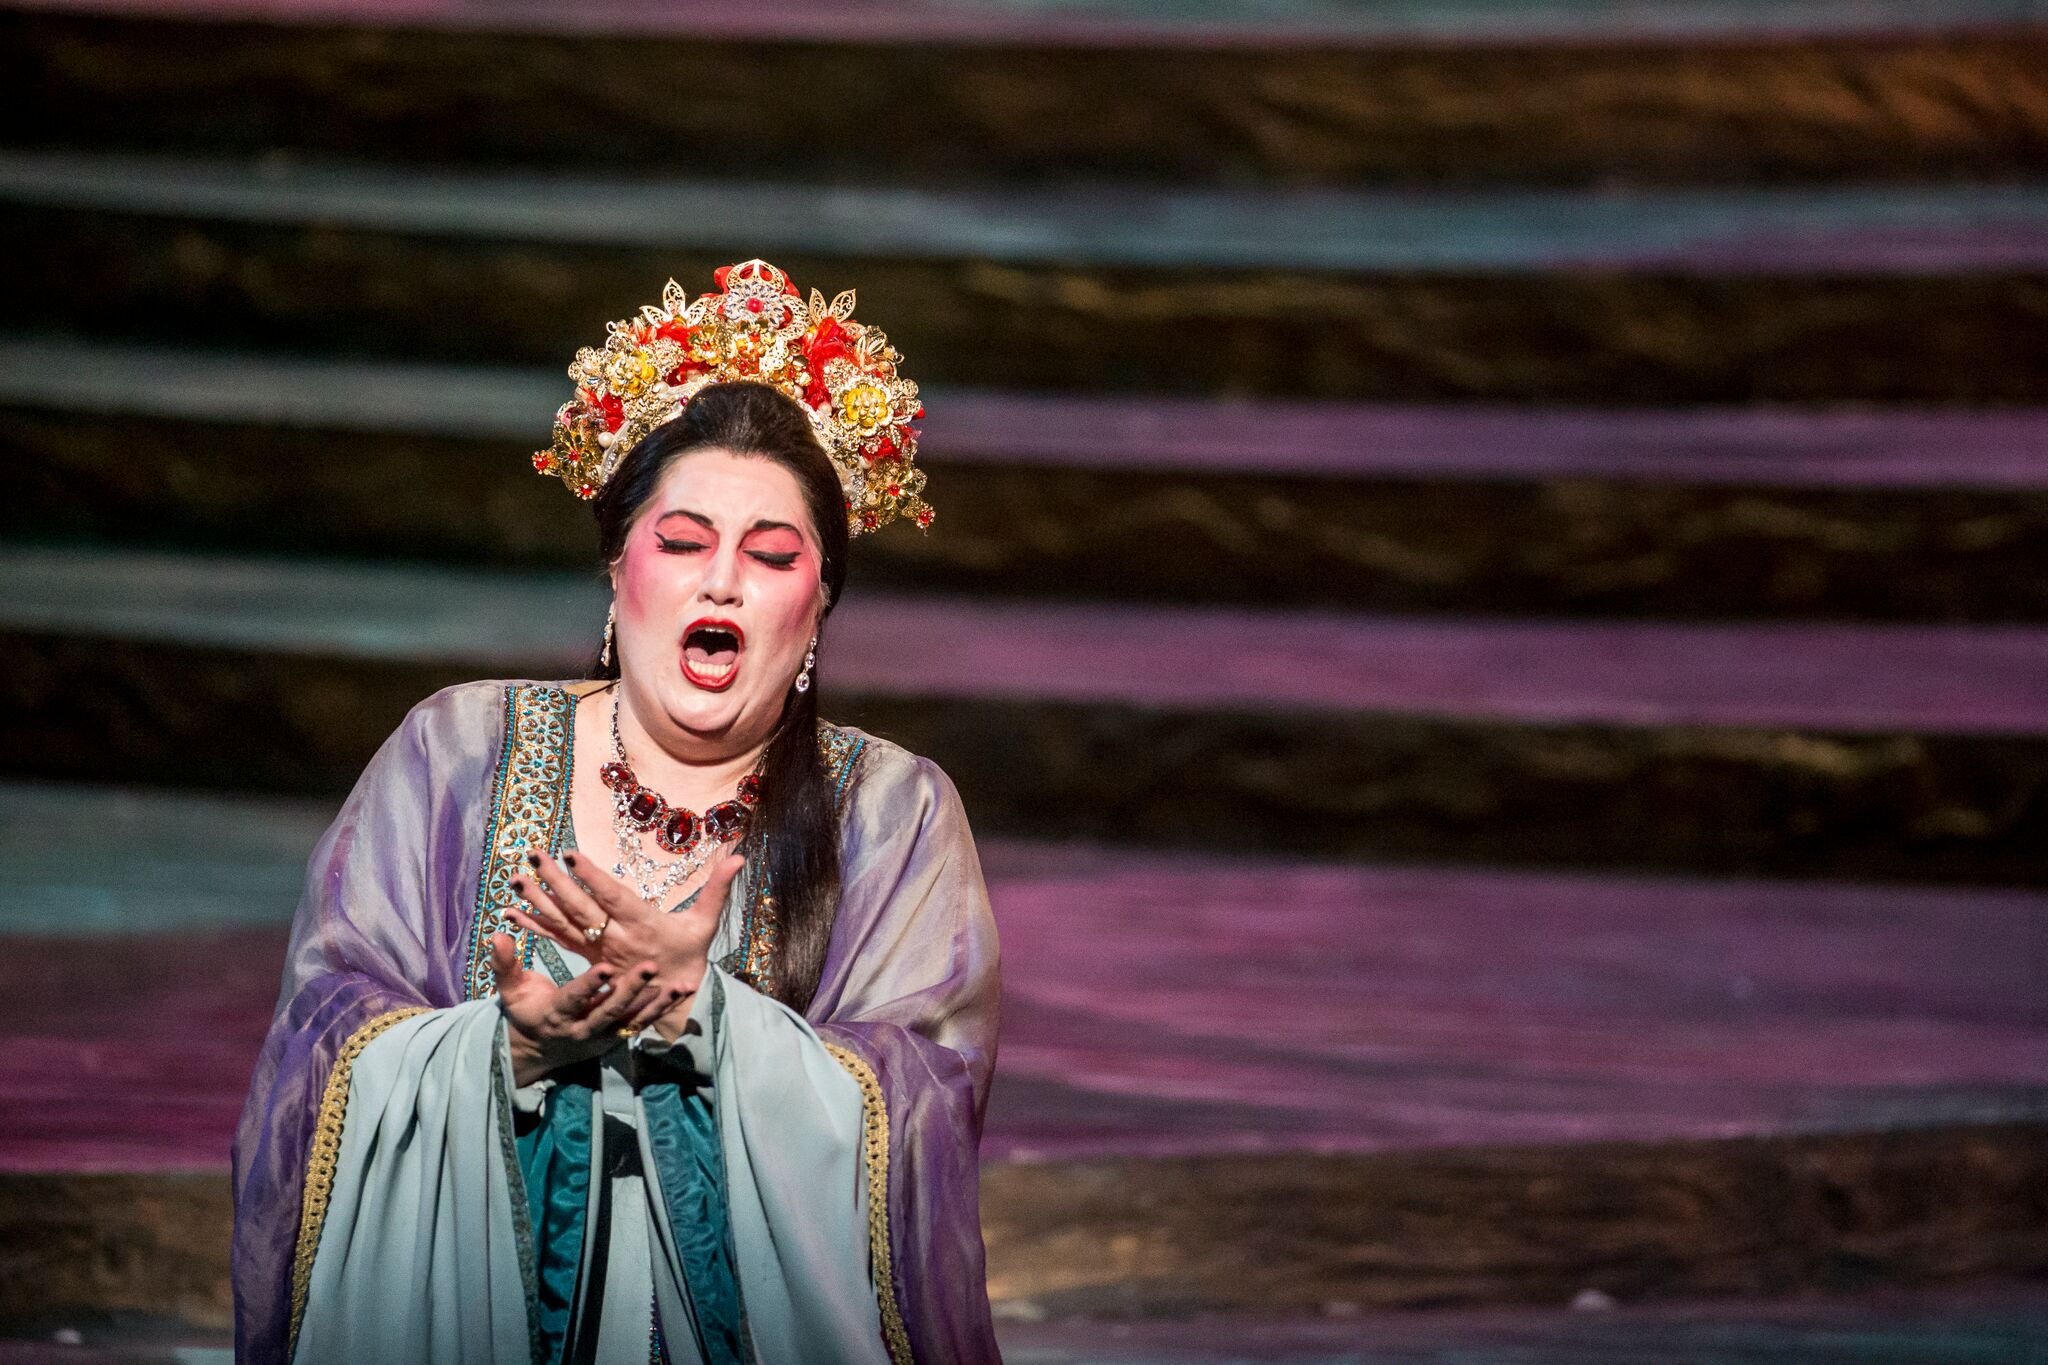 SB042518 TOturandot 301655_preview.jpg